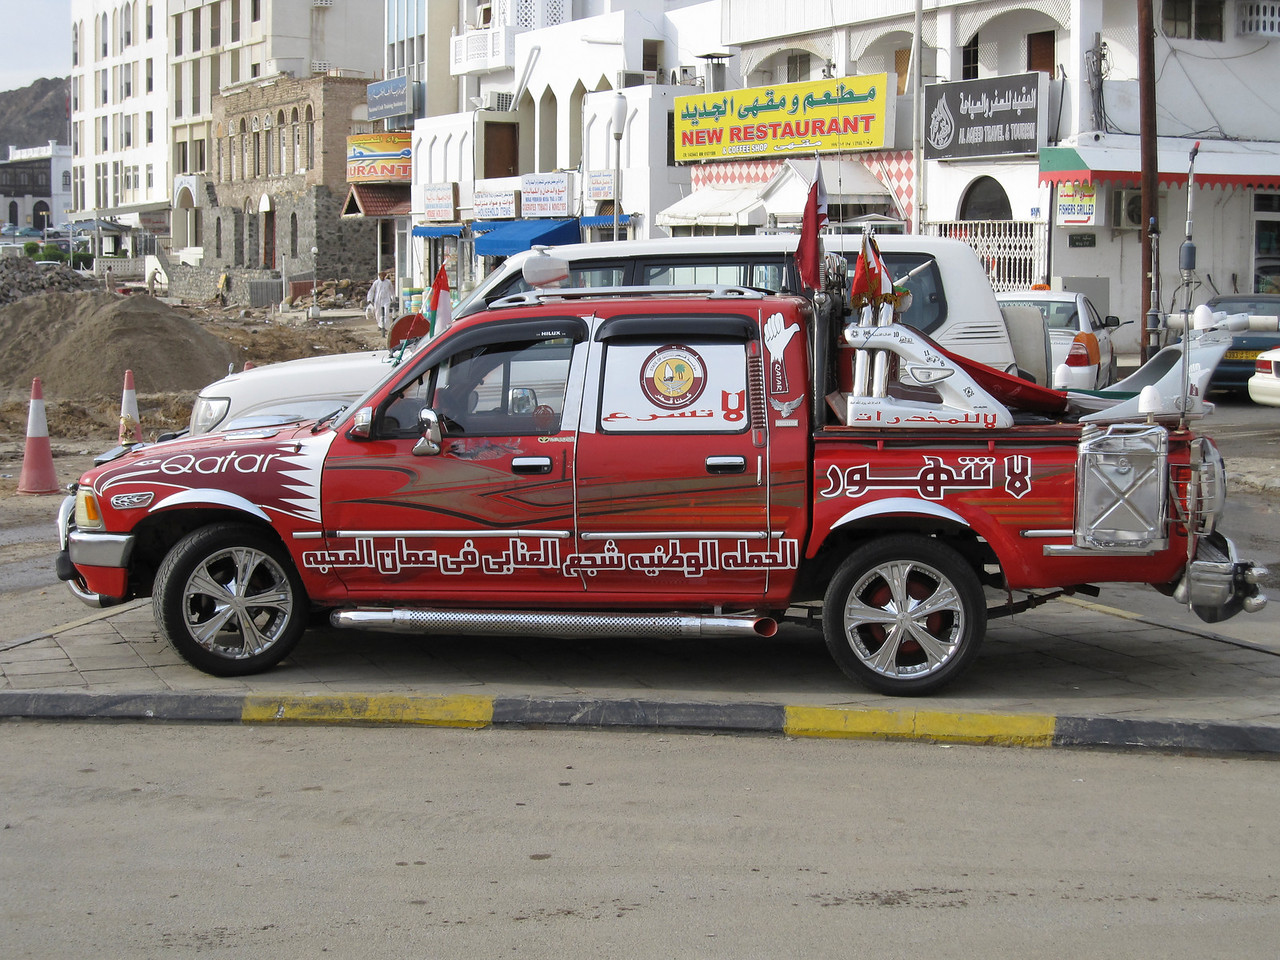 Colorful pickup truck in Muscat, Oman